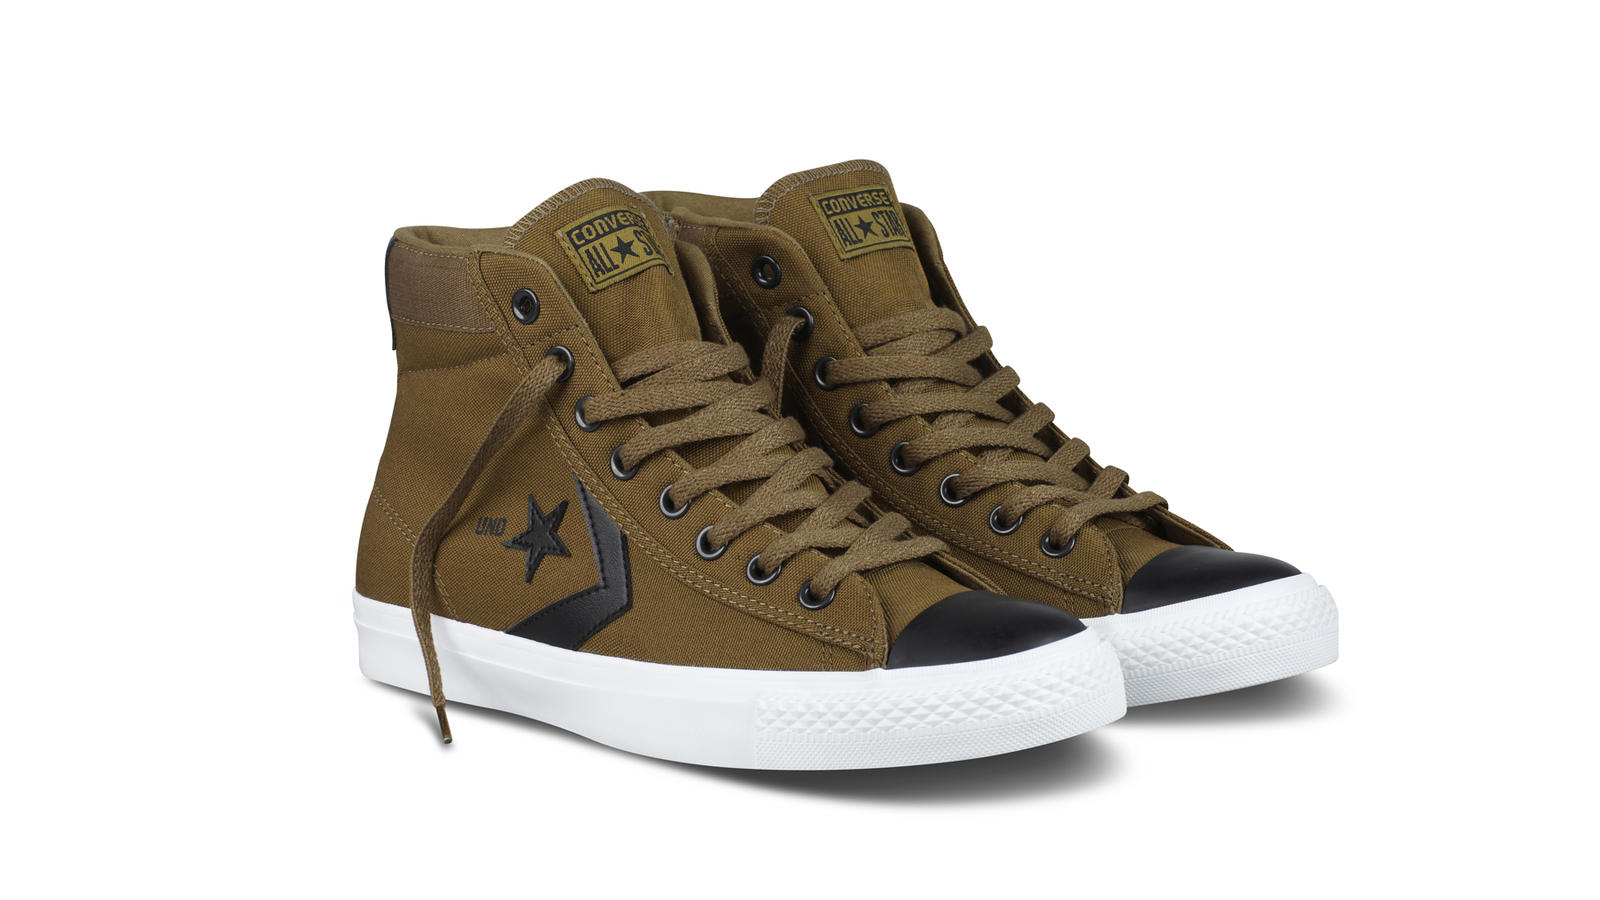 Converse and Undefeated launch